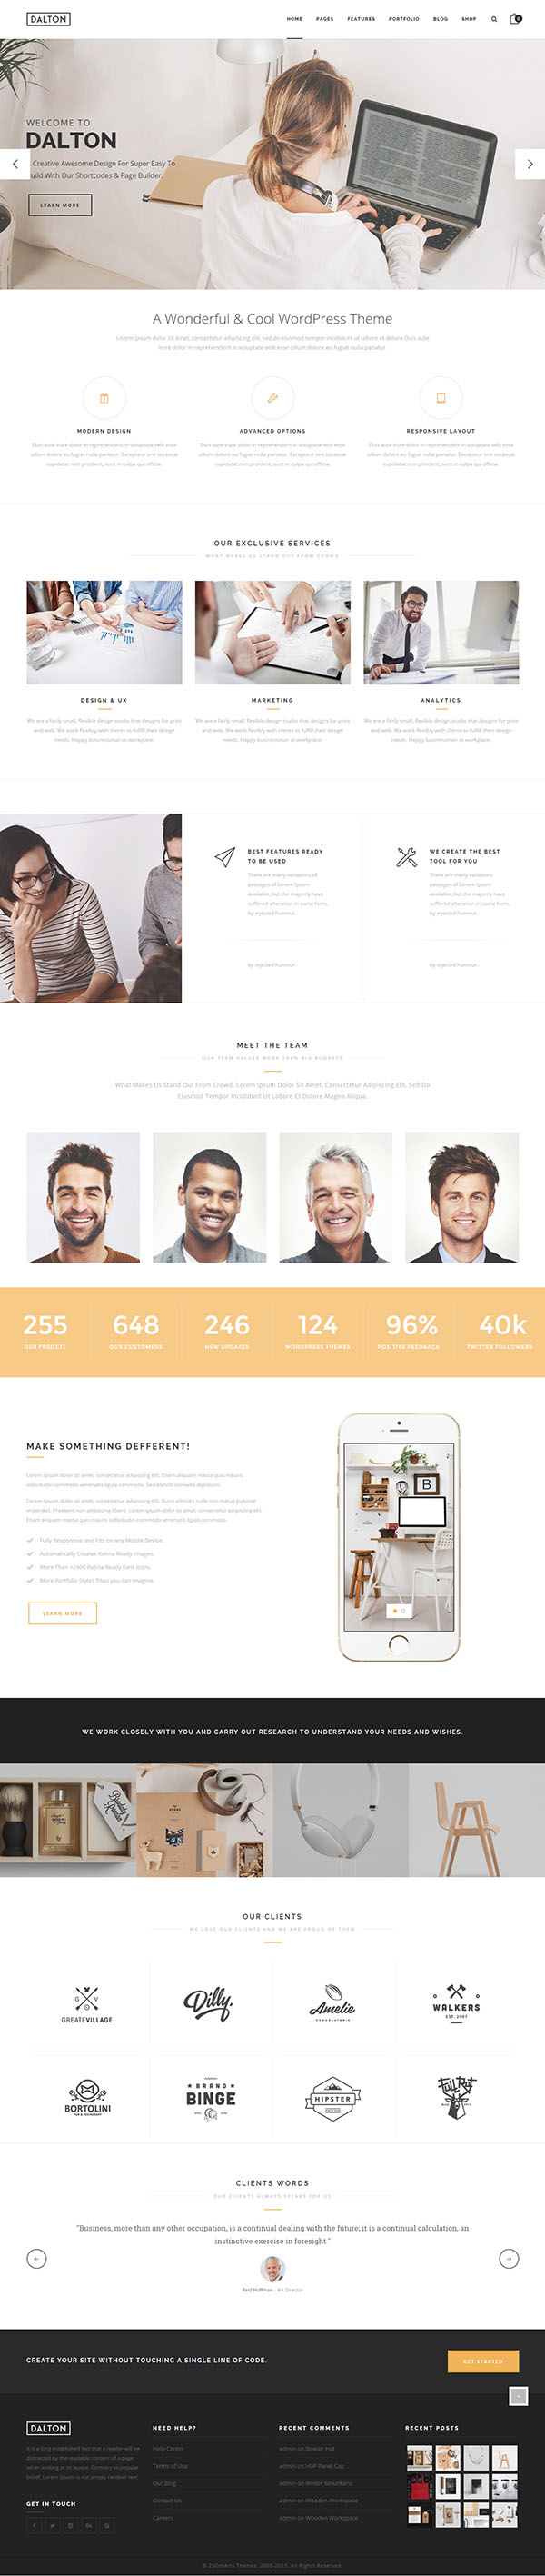 Dalton – Clean Multi-Purpose WordPress Theme